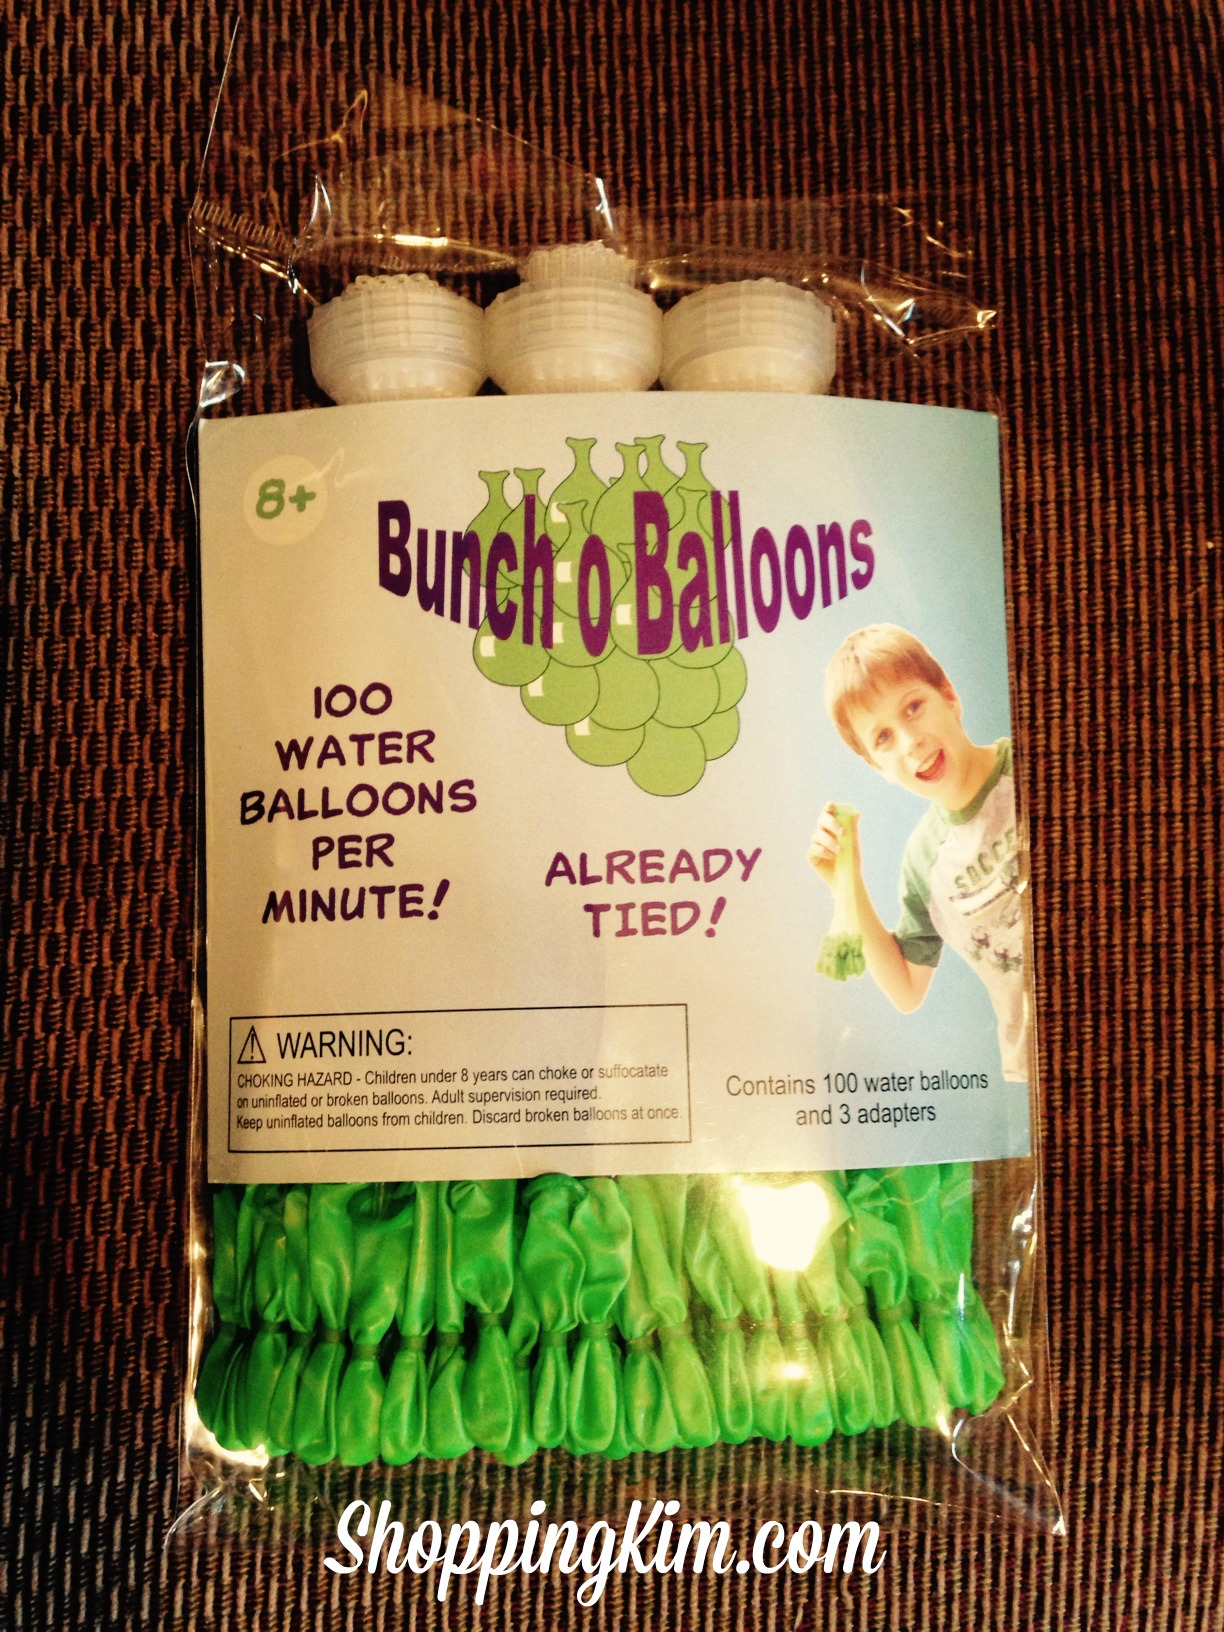 How To Fill Up Bunch O Balloons Water Balloons {Review & Video}